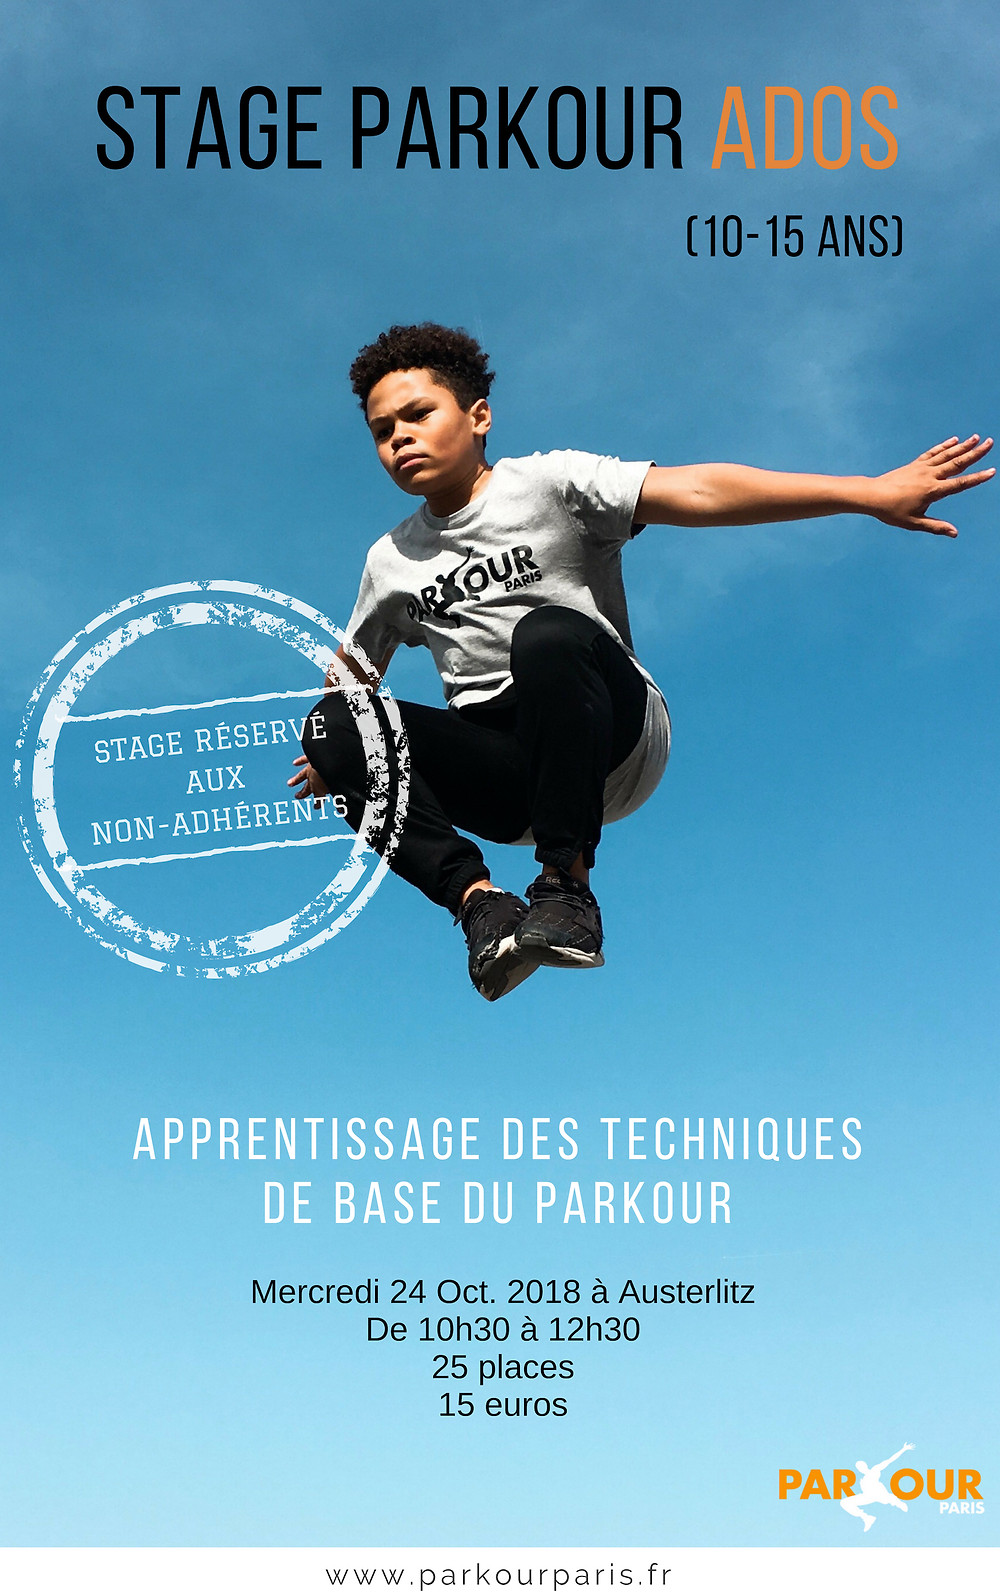 Stage Parkour Ados - 10/15 ans